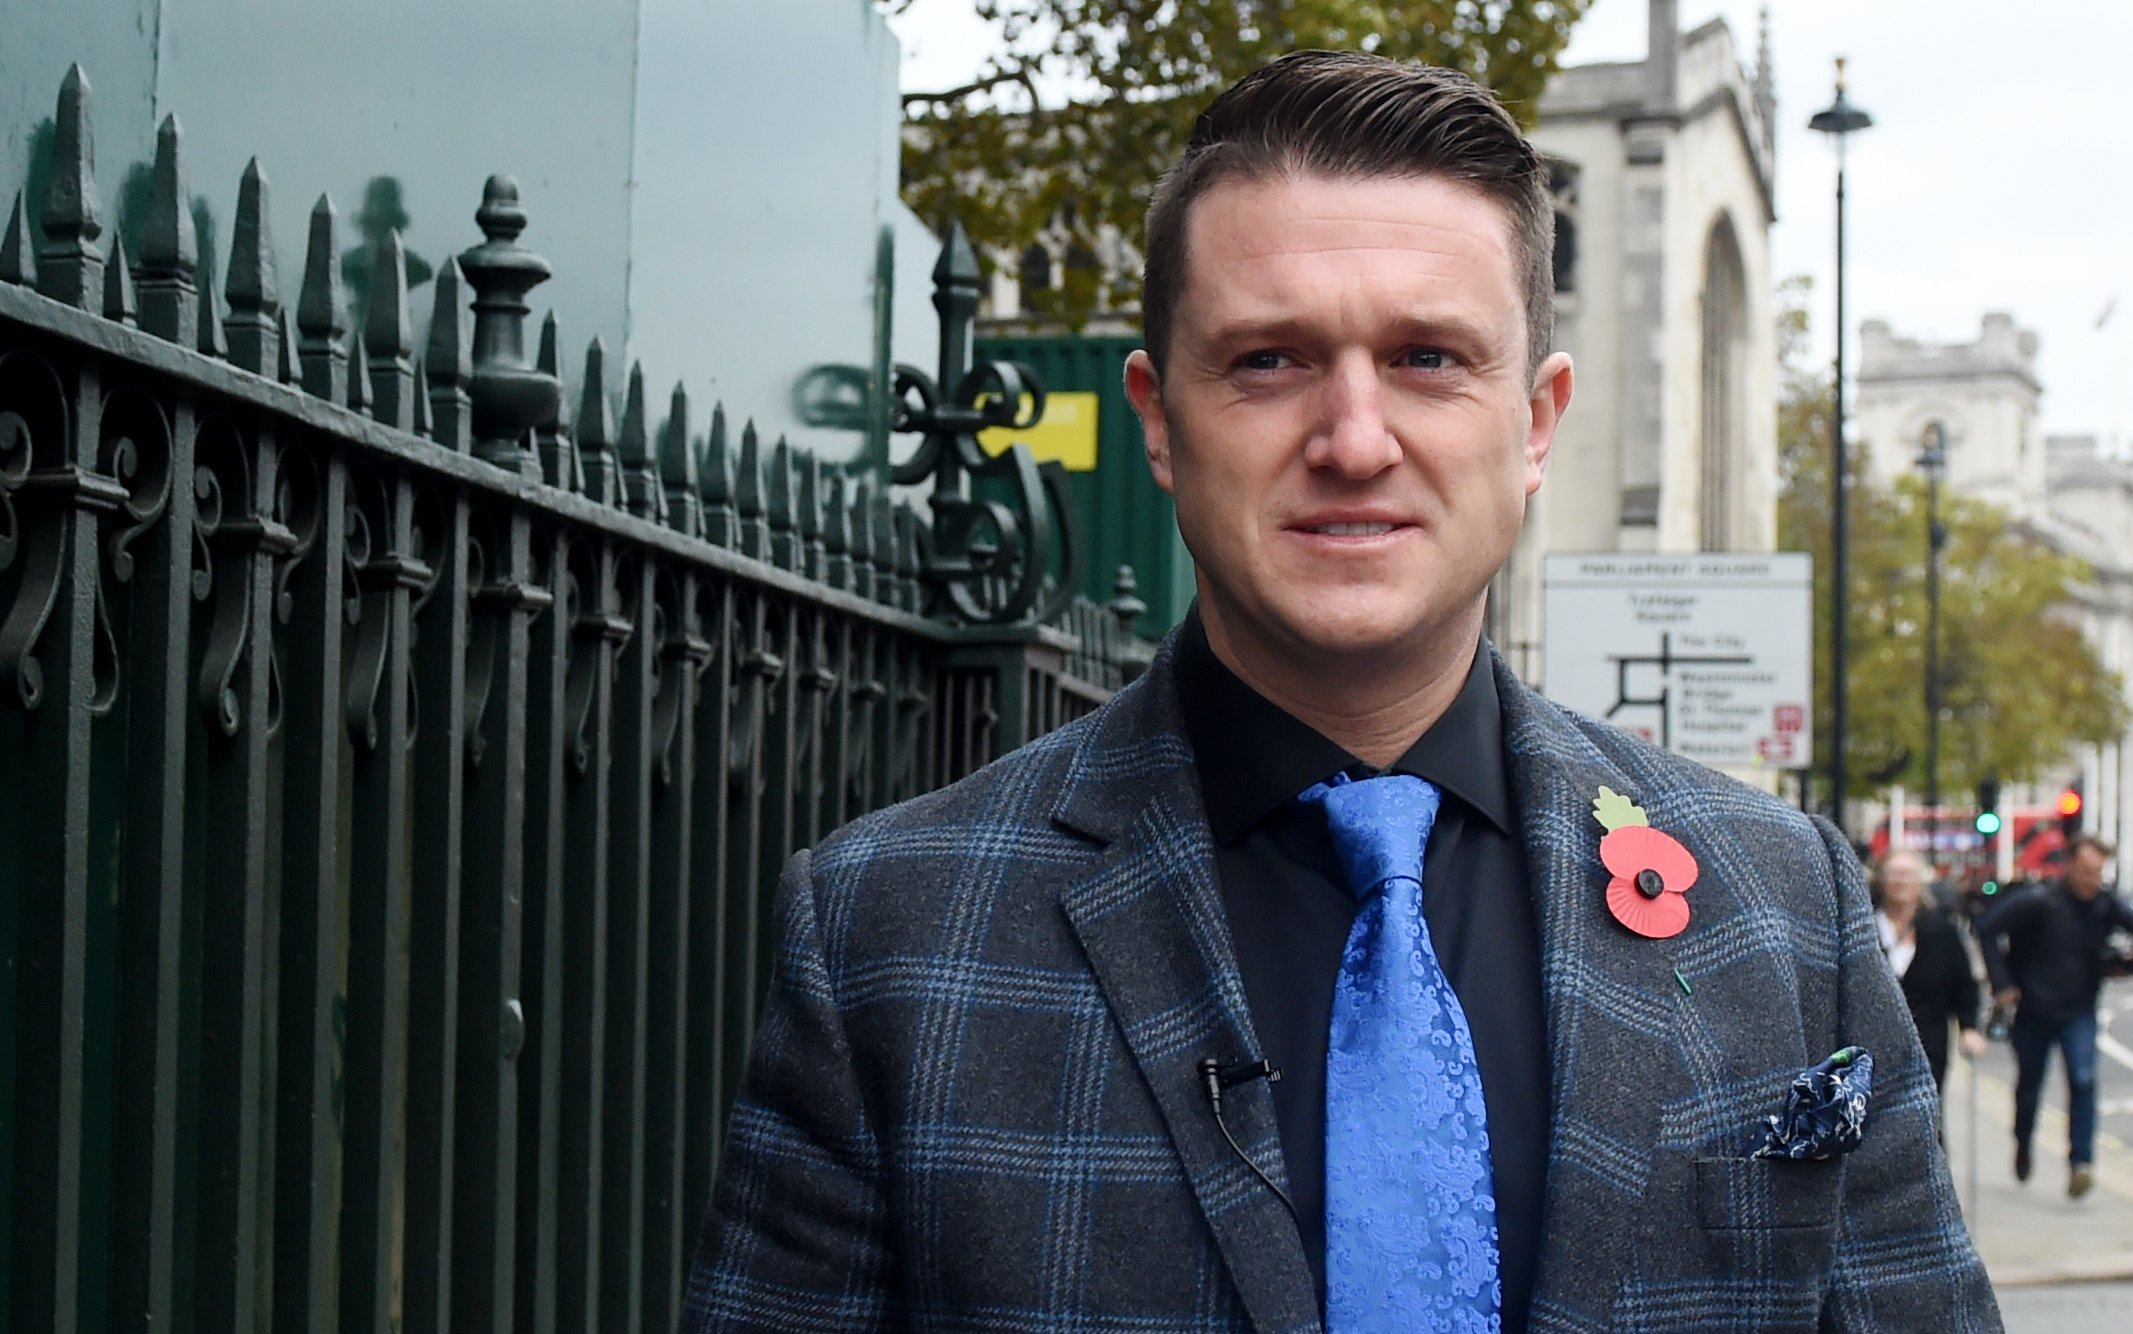 epa07145446 Far right activist, known as Tommy Robinson, (Stephen Christopher Yaxley-Lennon) outside the British Houses of Parliament in central London, Britain, 06 November 2018. EPA/FACUNDO ARRIZABALAGA